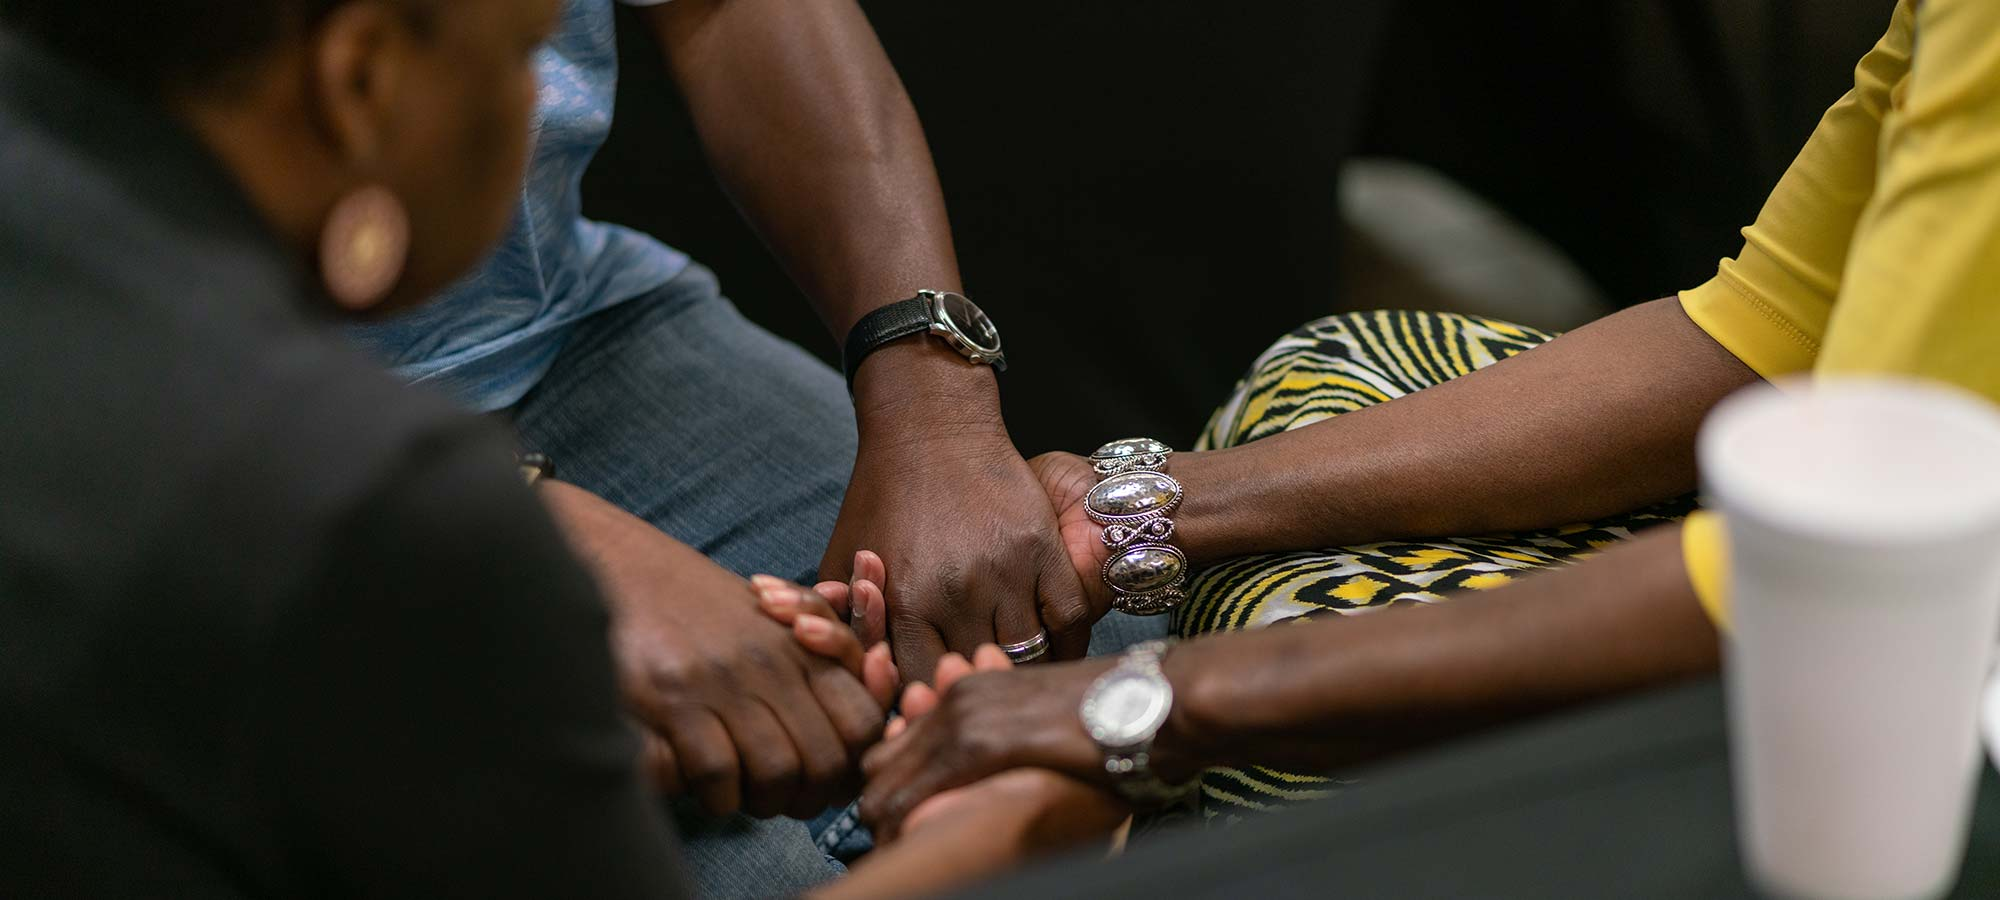 several people's hands clasped in prayer